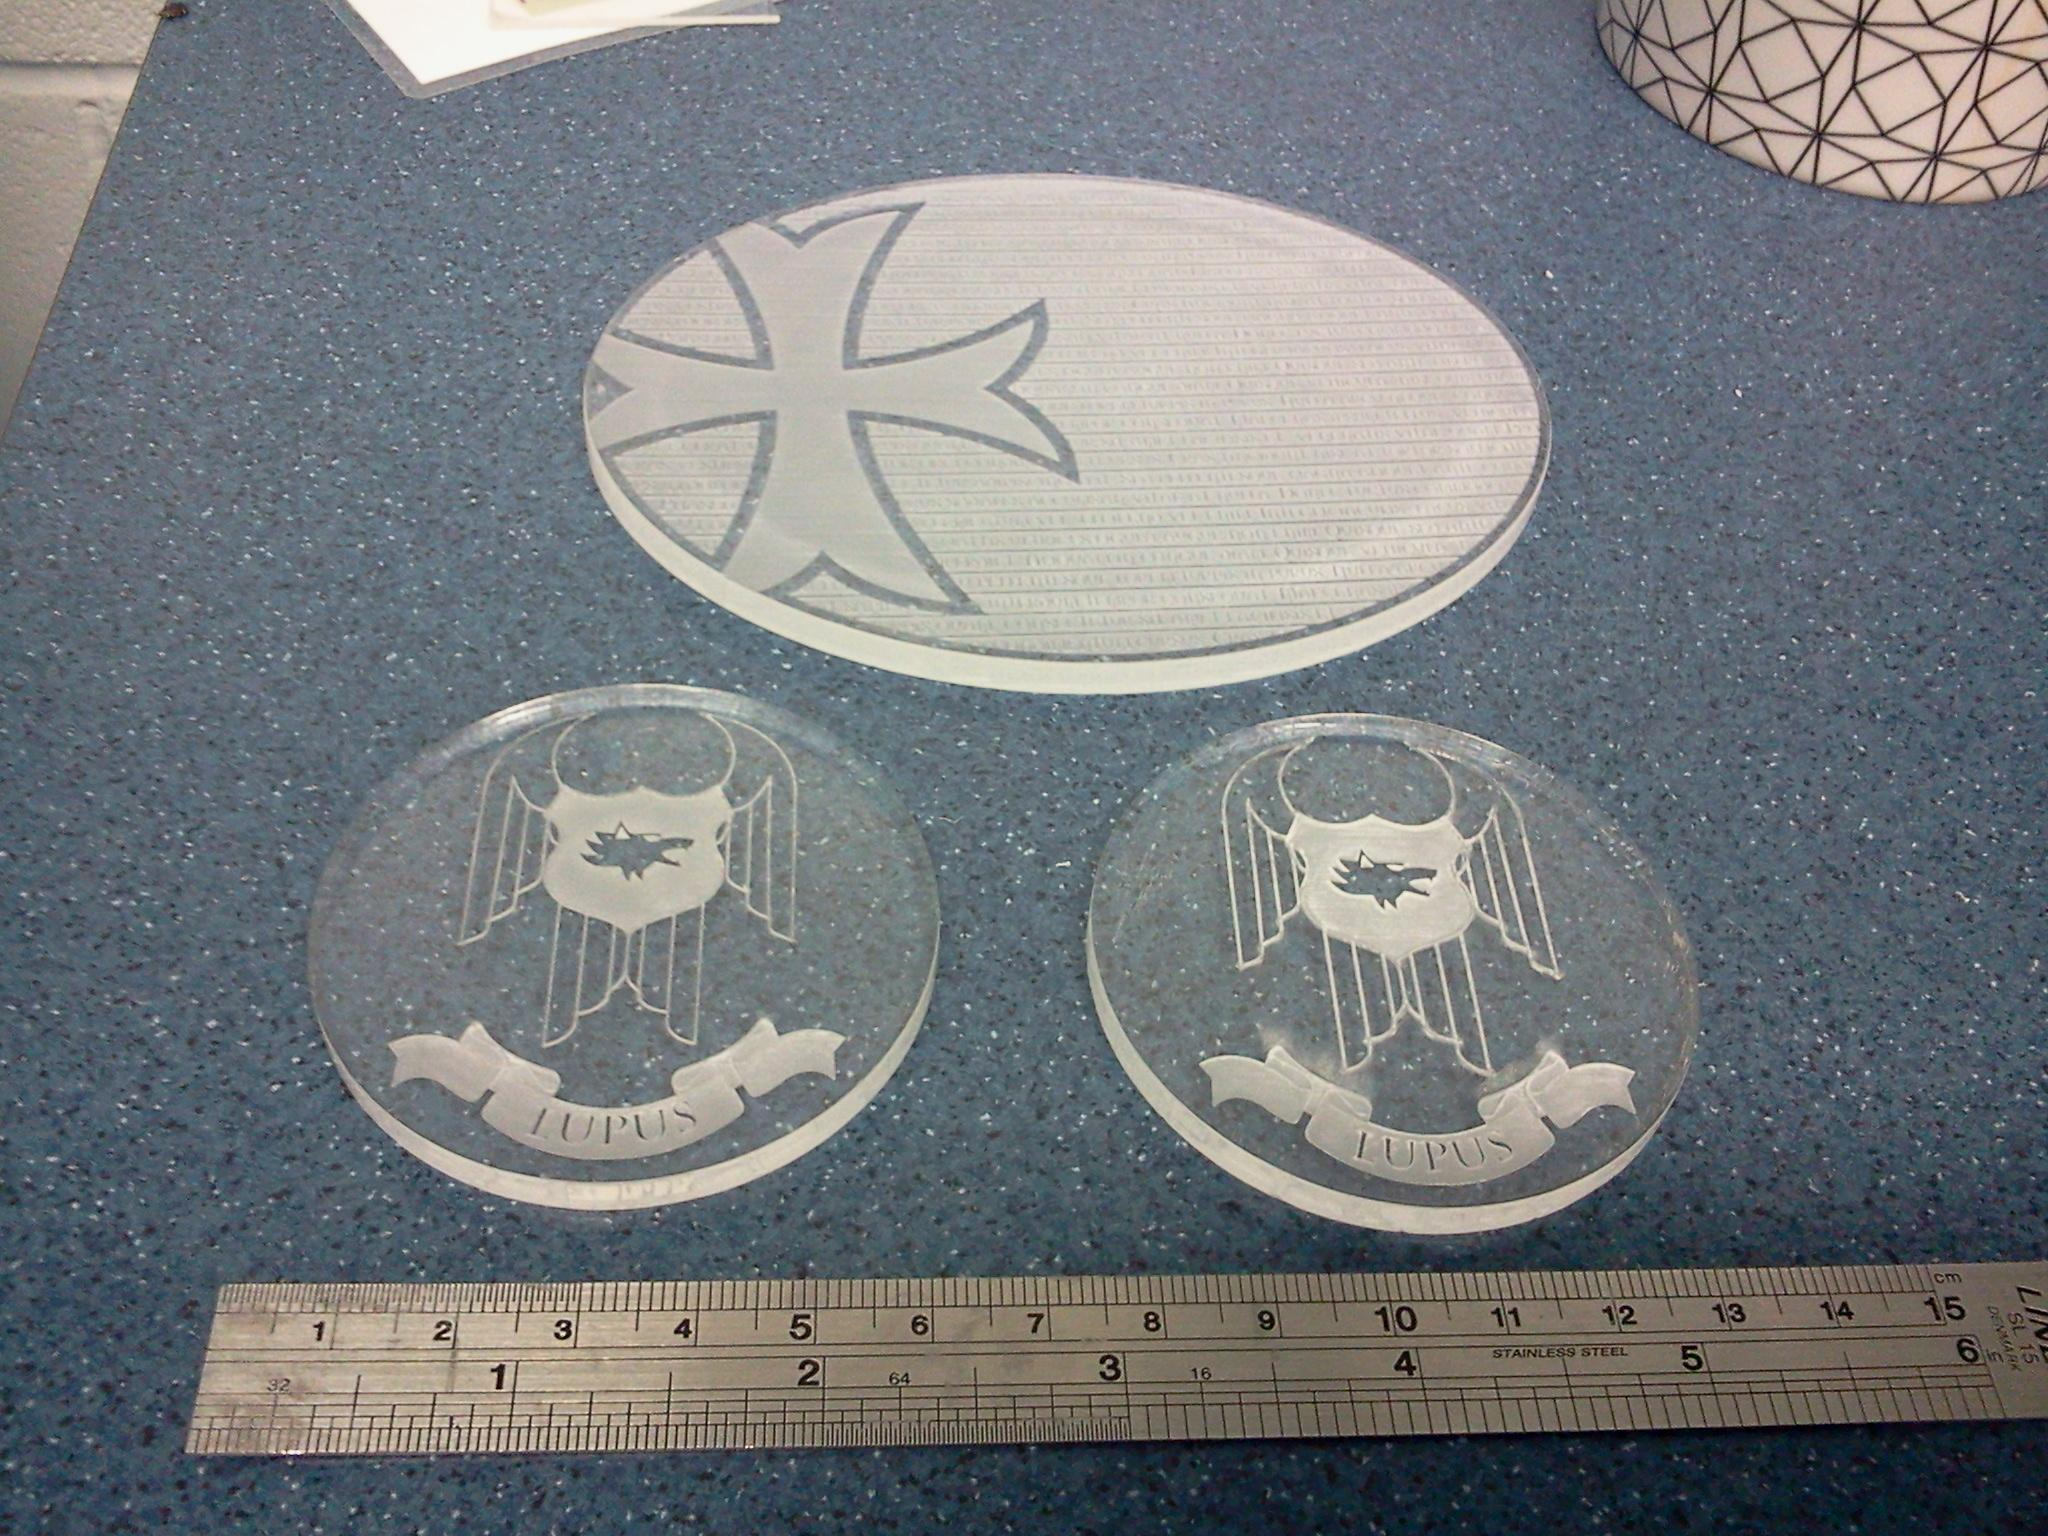 Some laser engraved 60mm bases and a flying base. The flying base has loads of writing on it